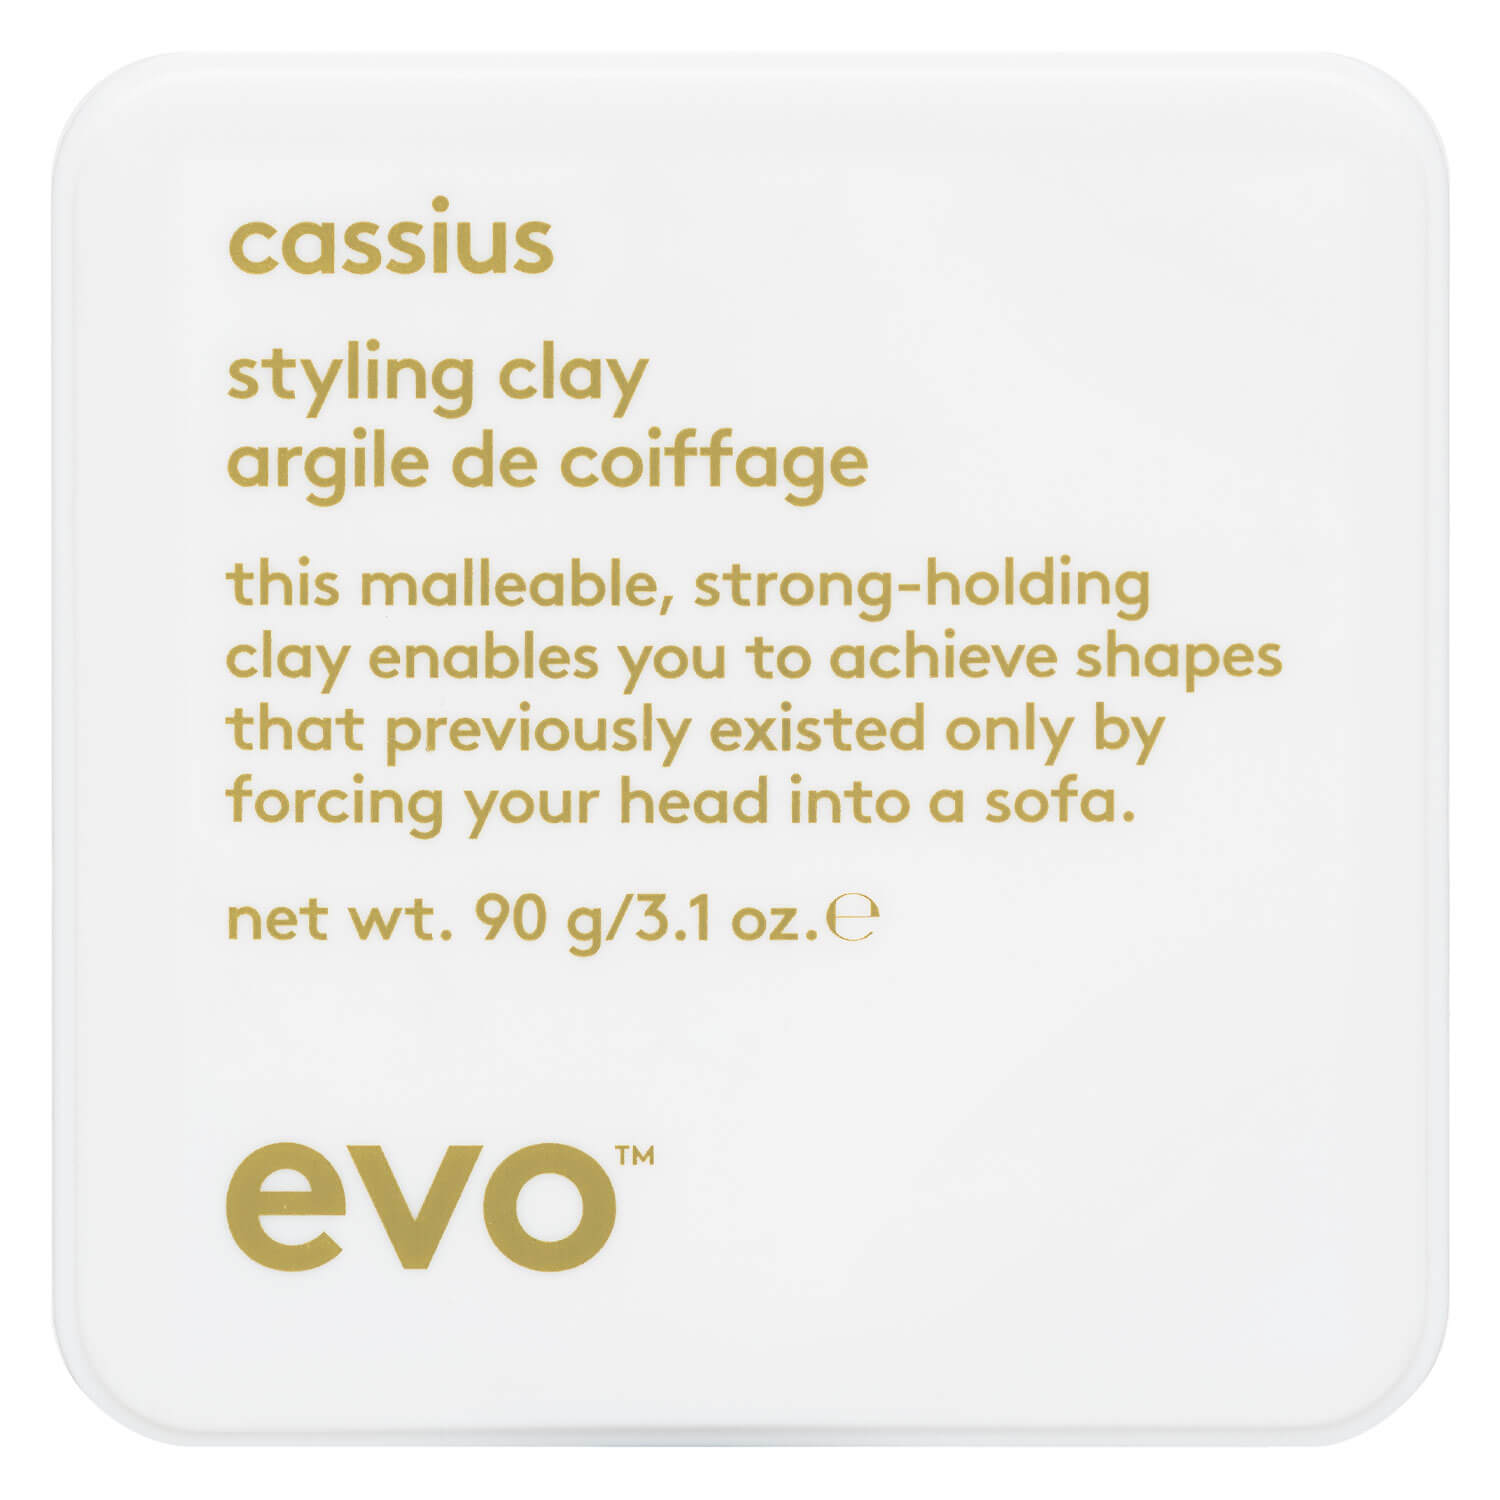 evo style - cassius styling clay